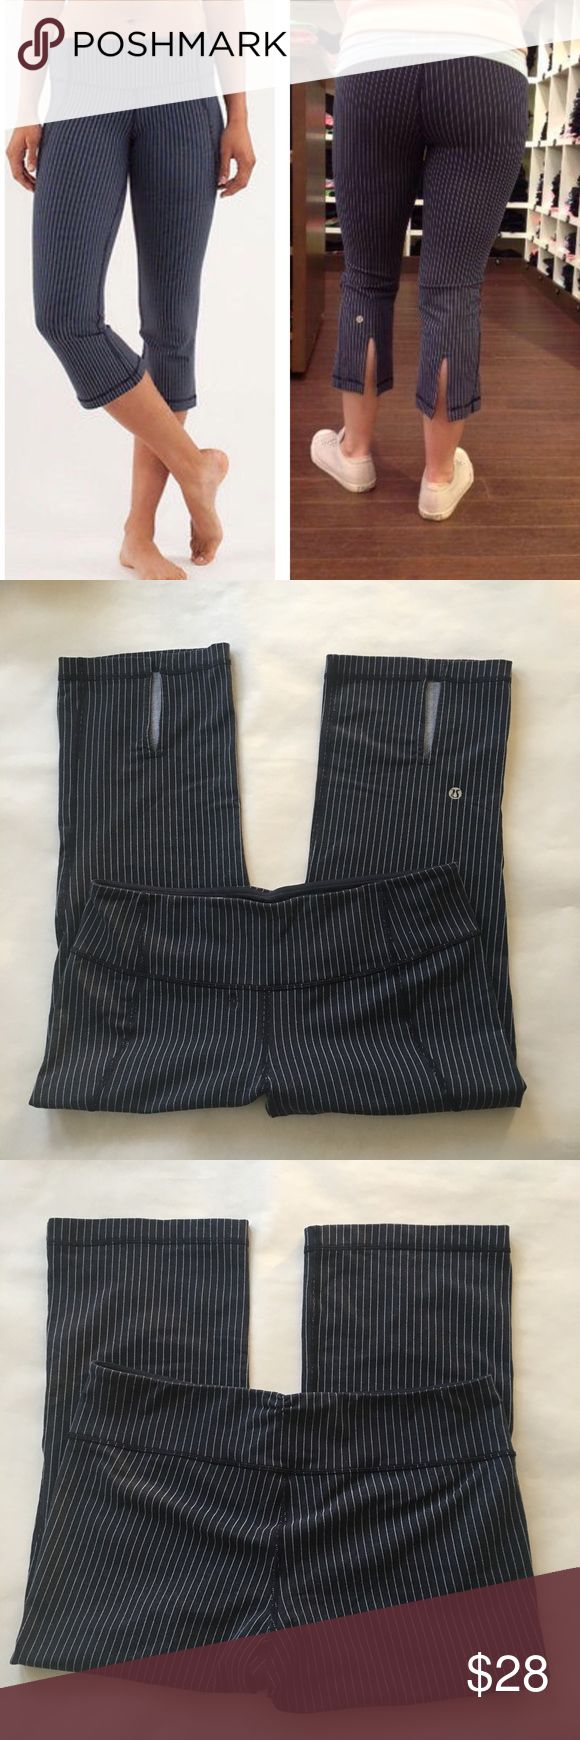 "🍋 Lululemon Gather & Crow Crop -Inkwell Pinstripe Cottony-soft Luon™ ·         Slit rear hem gives your calves range of movement ·         Hidden waistband pocket ·         fit: straight; rise: medium; inseam: 20 3/4"" ; leg opening: 15 1/8"" Worn and washed several times – no stains, tears, and very minimal pilling (can only feel it) in the gusset area but NOTE: there was a very small hole in the front of the pant that I had repaired at Lululemon (patched). It is not very noticeable; most…"